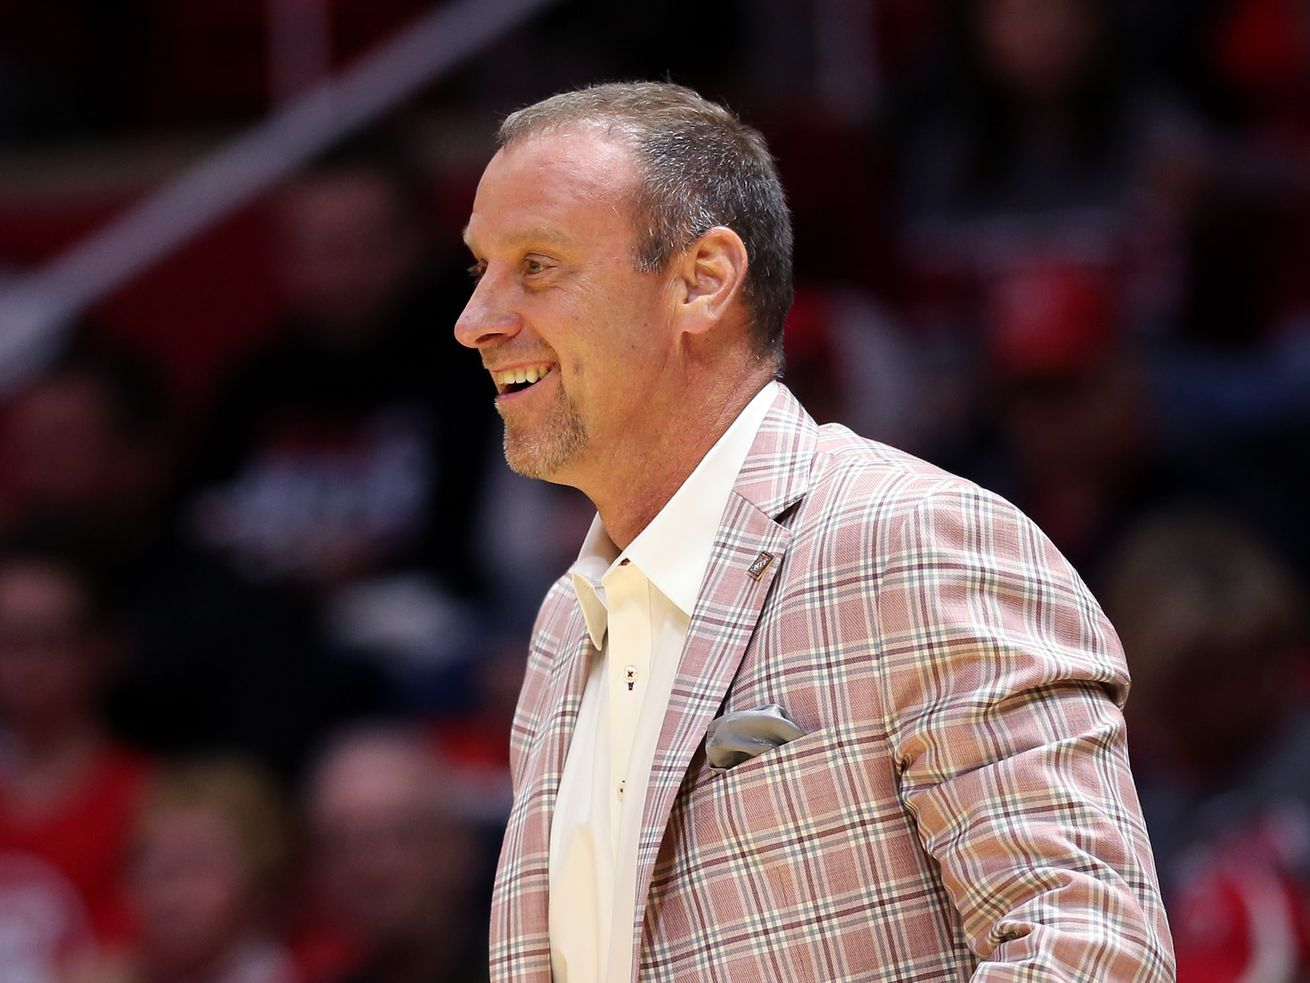 Utah Utes head coach Larry Krystkowiak smiles as he talks to one of his players as Utah and UC Davis play in an NIT basketball game at the Huntsman Center in Salt Lake City on Wednesday, March 14, 2018. Utah won 69-59.